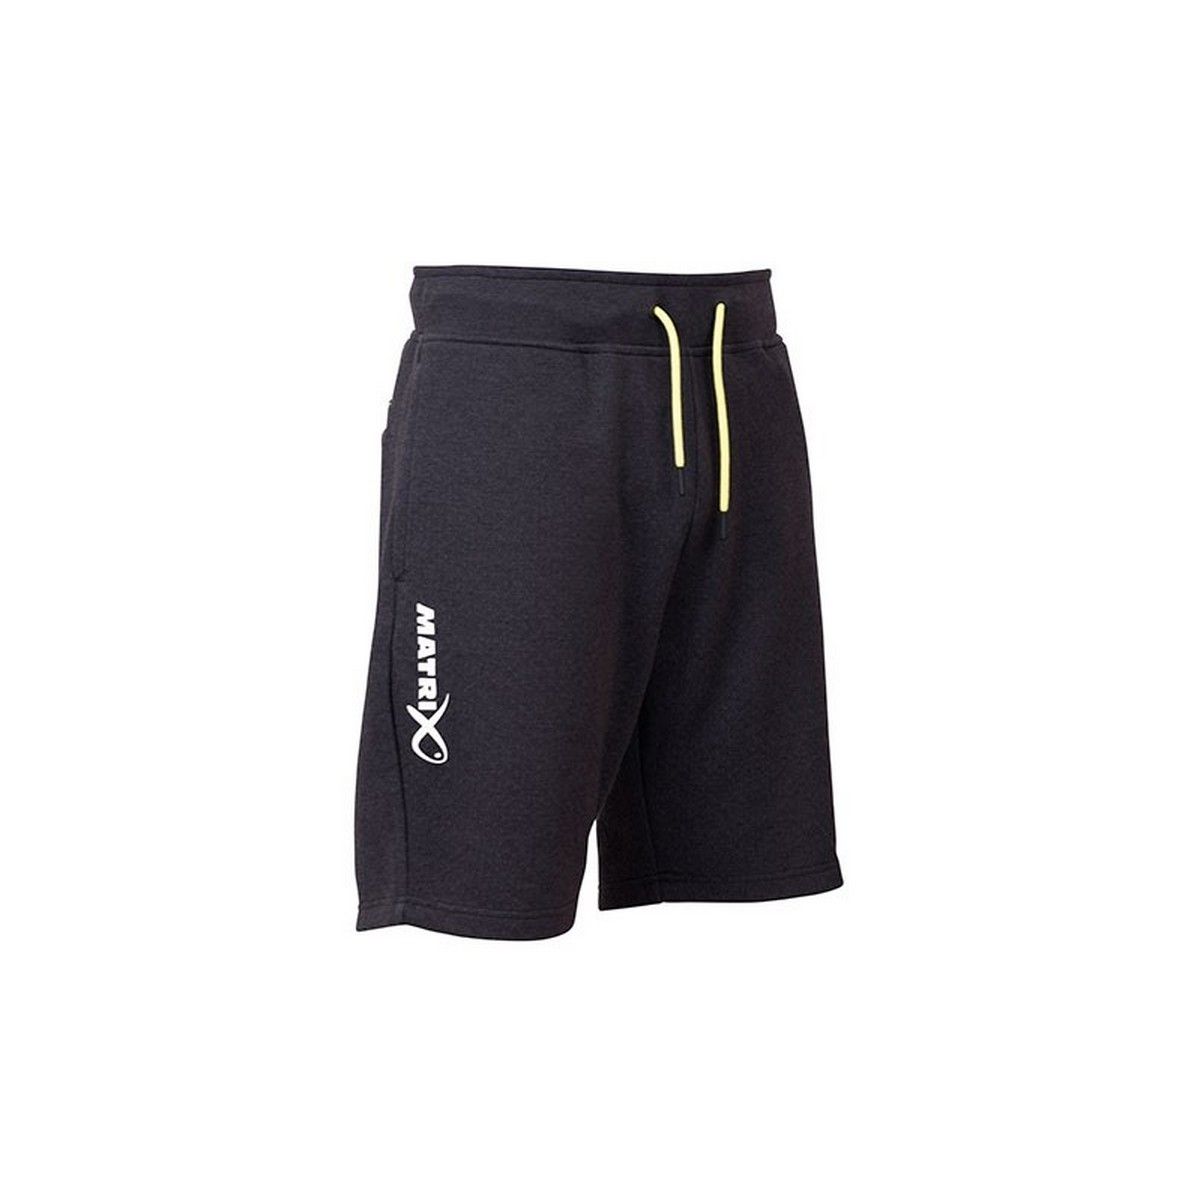 Къси панталони Matrix Minimal Black Marl Jogger Shorts